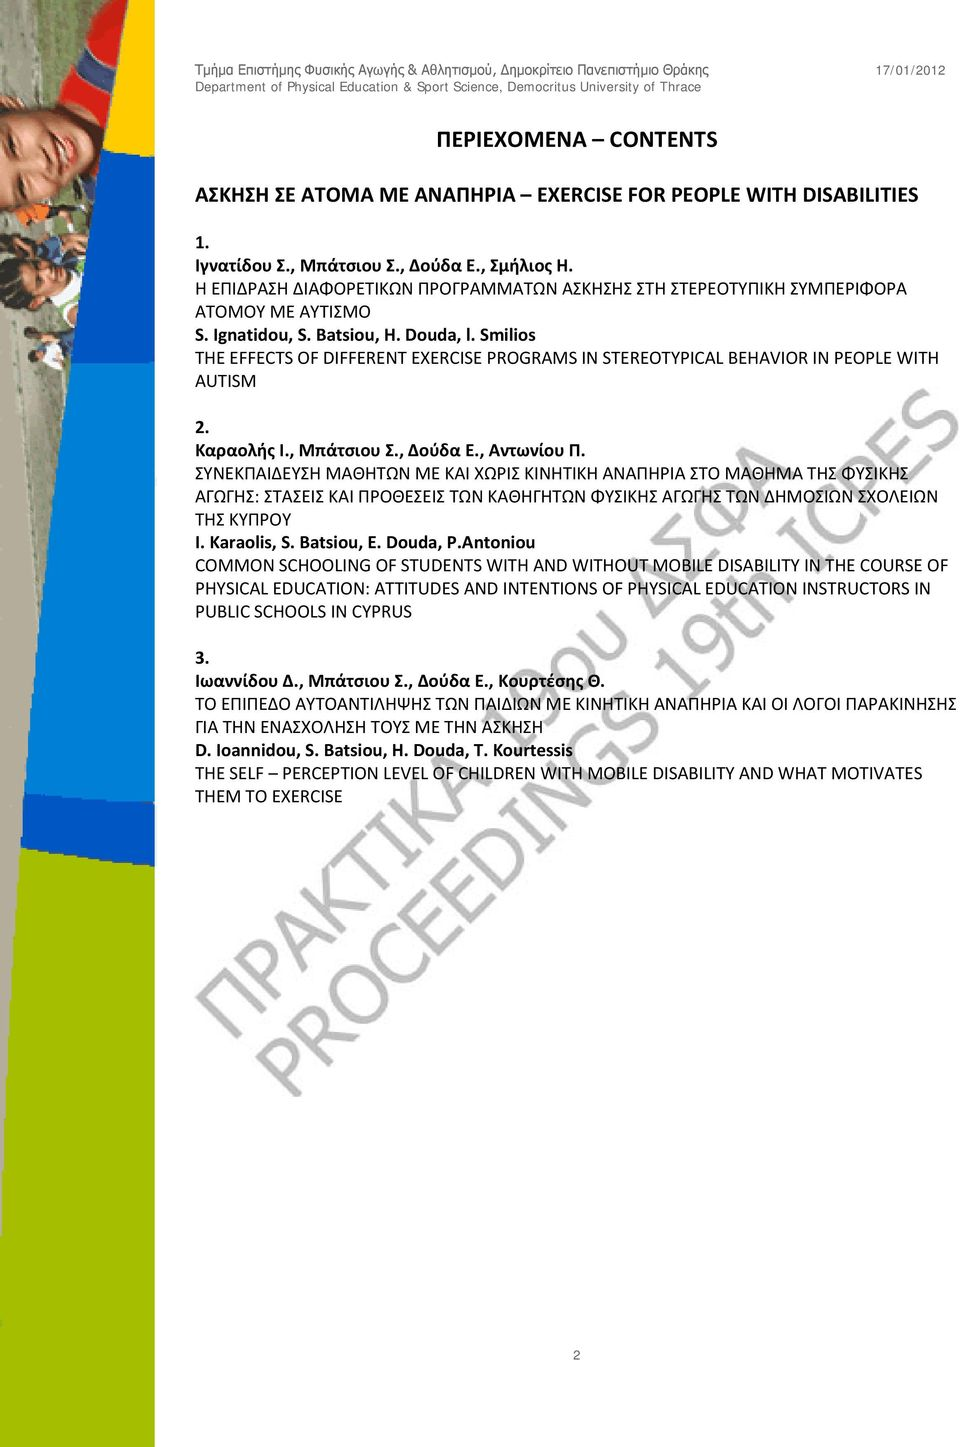 Smilios THE EFFECTS OF DIFFERENT EXERCISE PROGRAMS IN STEREOTYPICAL BEHAVIOR IN PEOPLE WITH AUTISM 2. Καραολής Ι., Μπάτσιου Σ., Δούδα Ε., Αντωνίου Π.